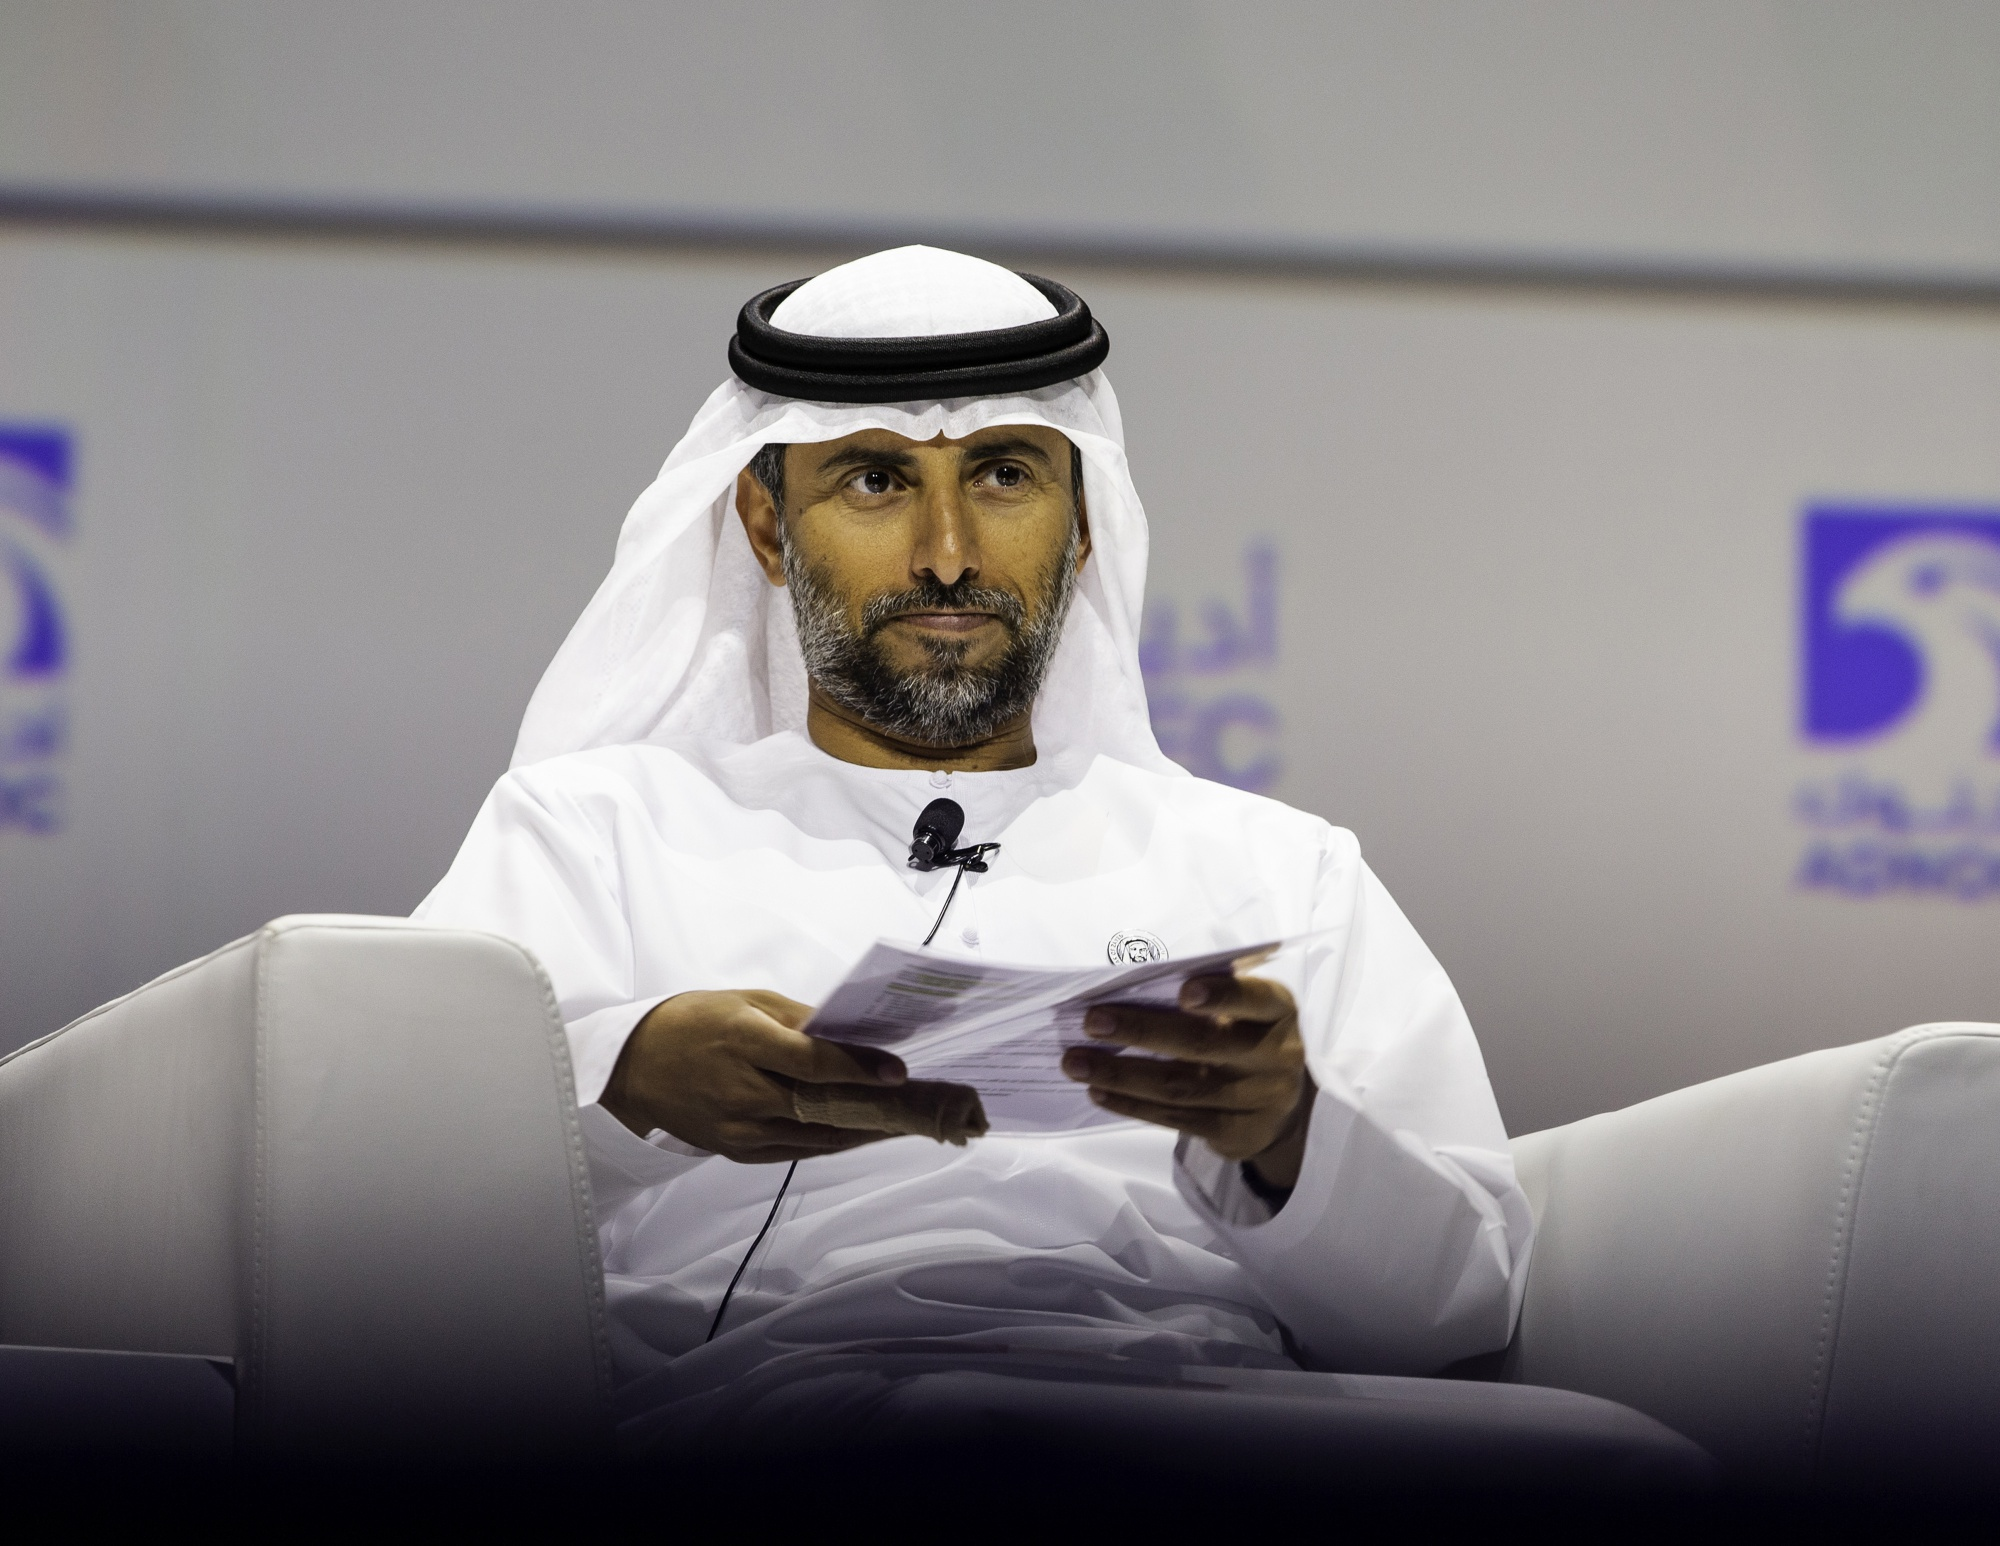 Suhail Al Mazrouei, United Arab Emirates' energy minister, pauses at the Abu Dhabi International Petroleum Exhibition & Conference (ADIPEC) in Abu Dhabi, United Arab Emirates, on Tuesday, Nov. 13, 2018. OPEC's secretary-general, energy ministers from Saudi Arabia to Russia, CEOs at oil majors from Total SA, BP Plc and Eni SpA, and officials from Middle Eastern energy giants such as Abu Dhabi's Adnoc have gathered to sign deals and discuss oil, gas, refining and petrochemical issues. Photographer: Christopher Pike/Bloomberg